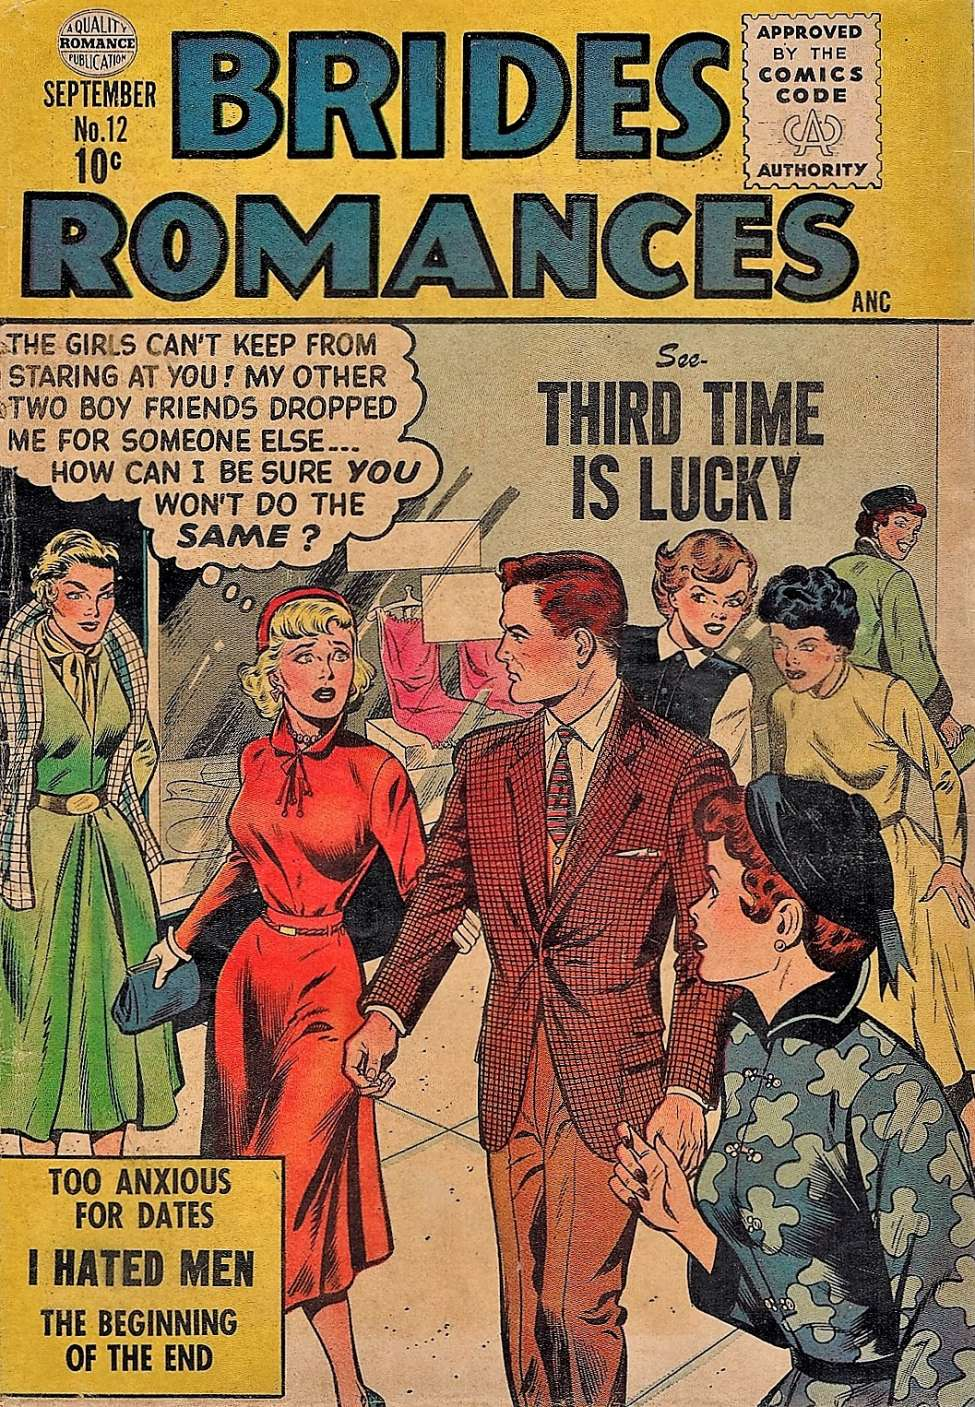 Comic Book Cover For Brides Romances #12